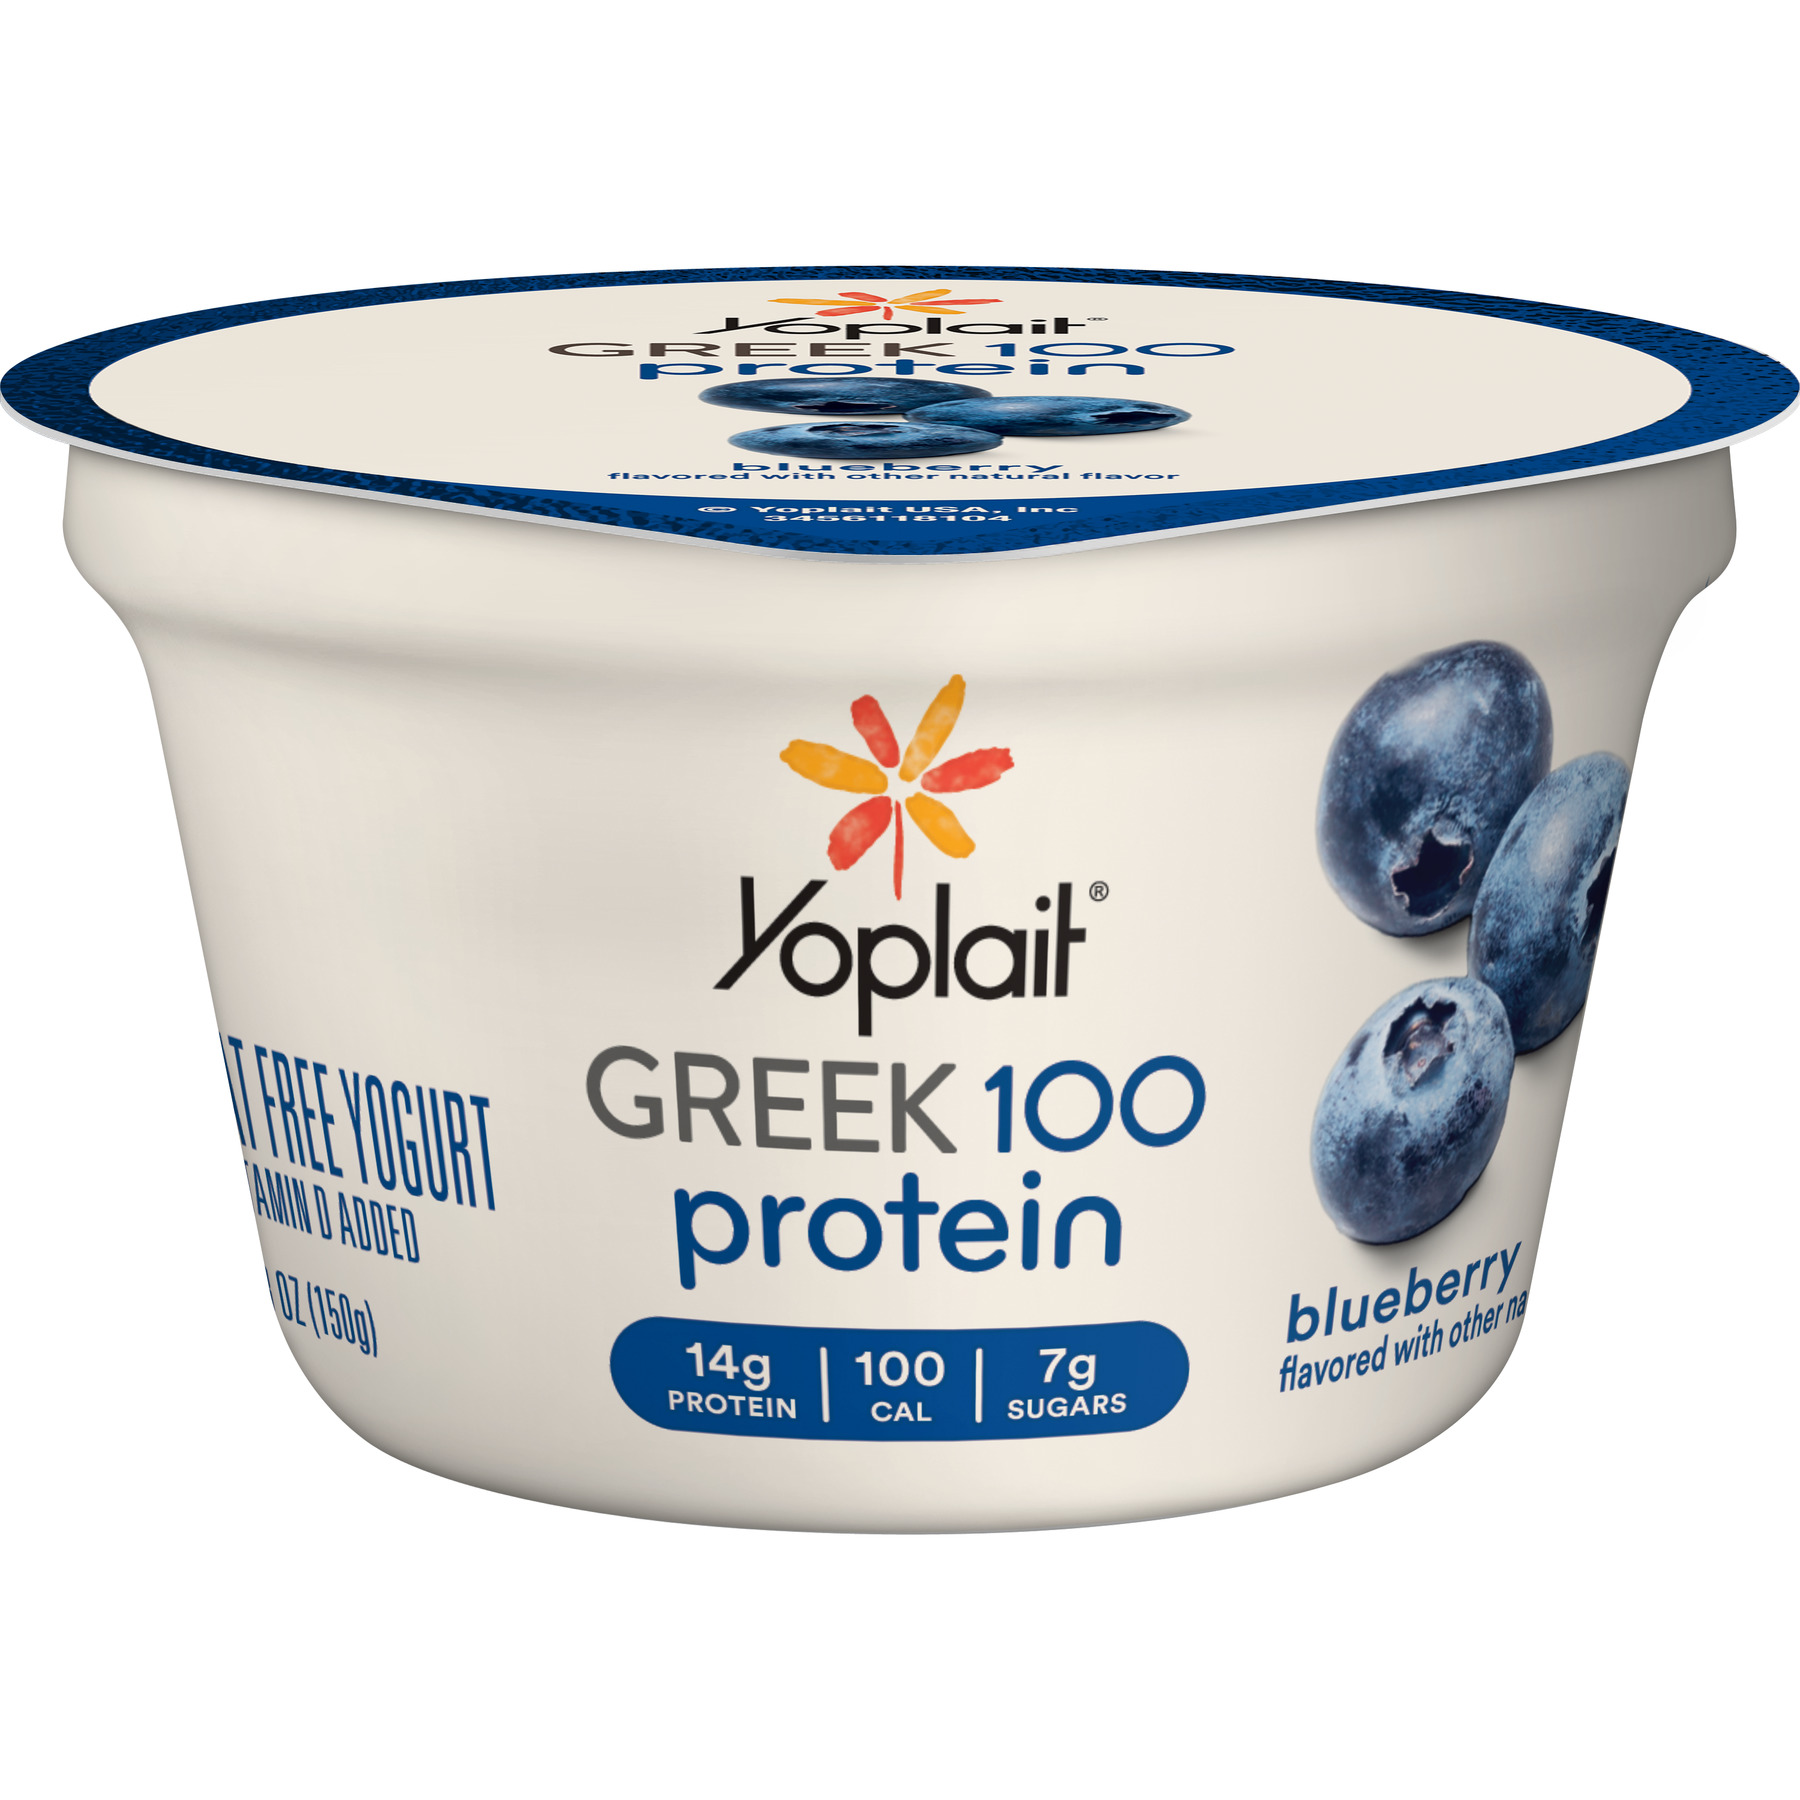 Yoplait Greek 100 Protein Yogurt Blueberry, 5.3 oz